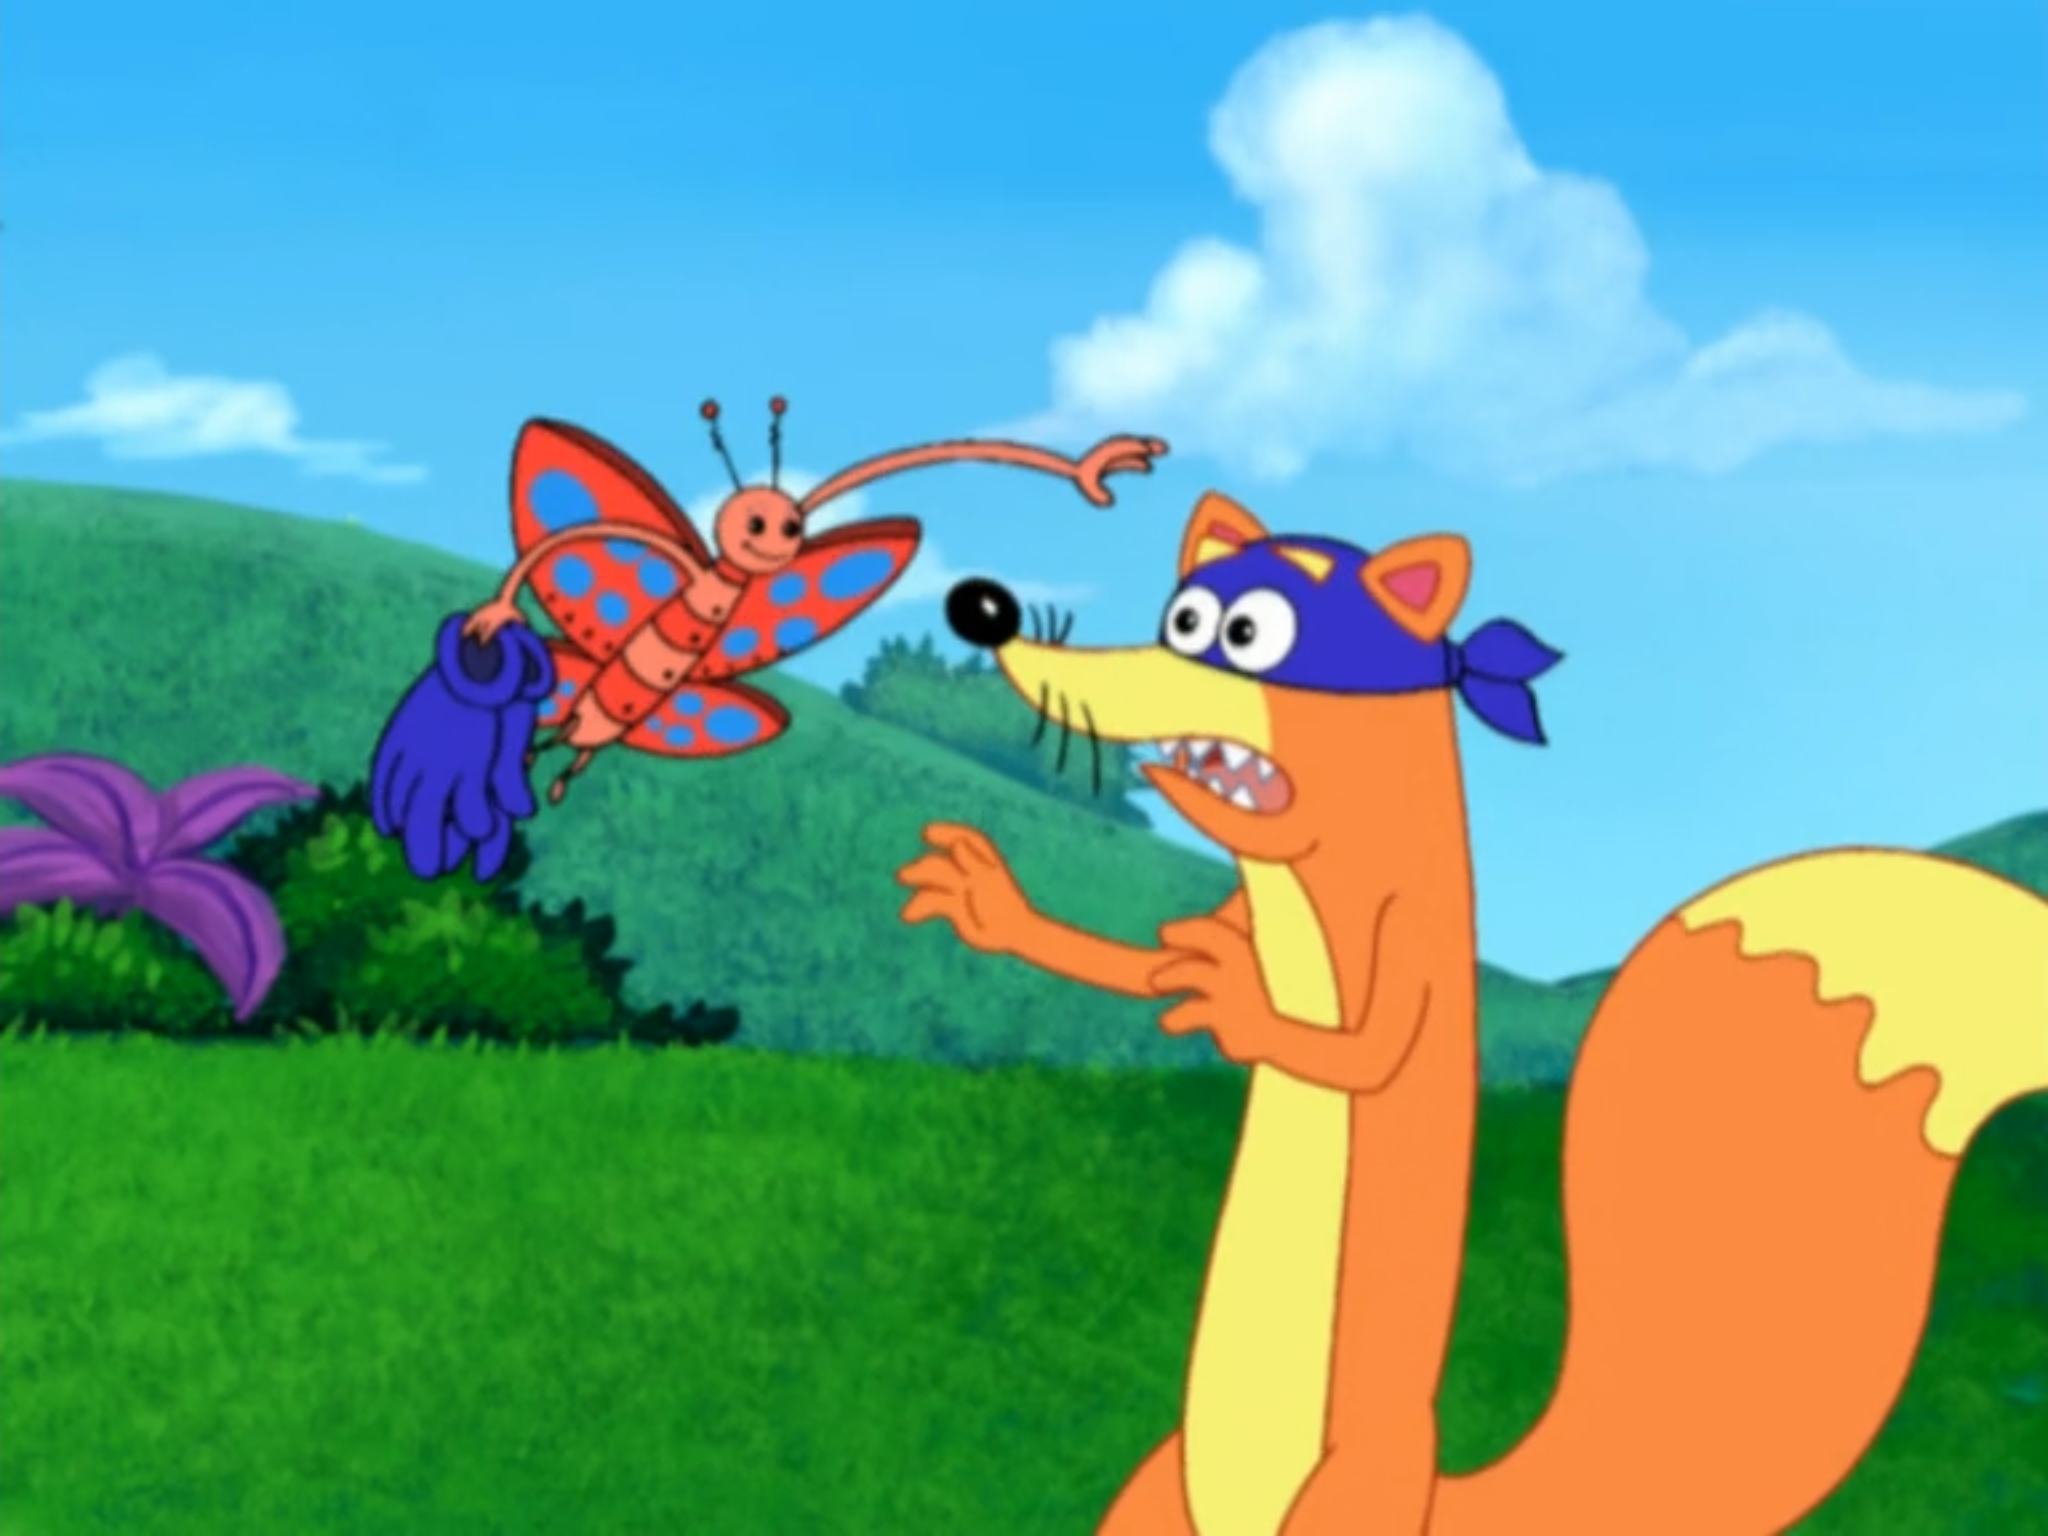 File:Swiper without gloves.png